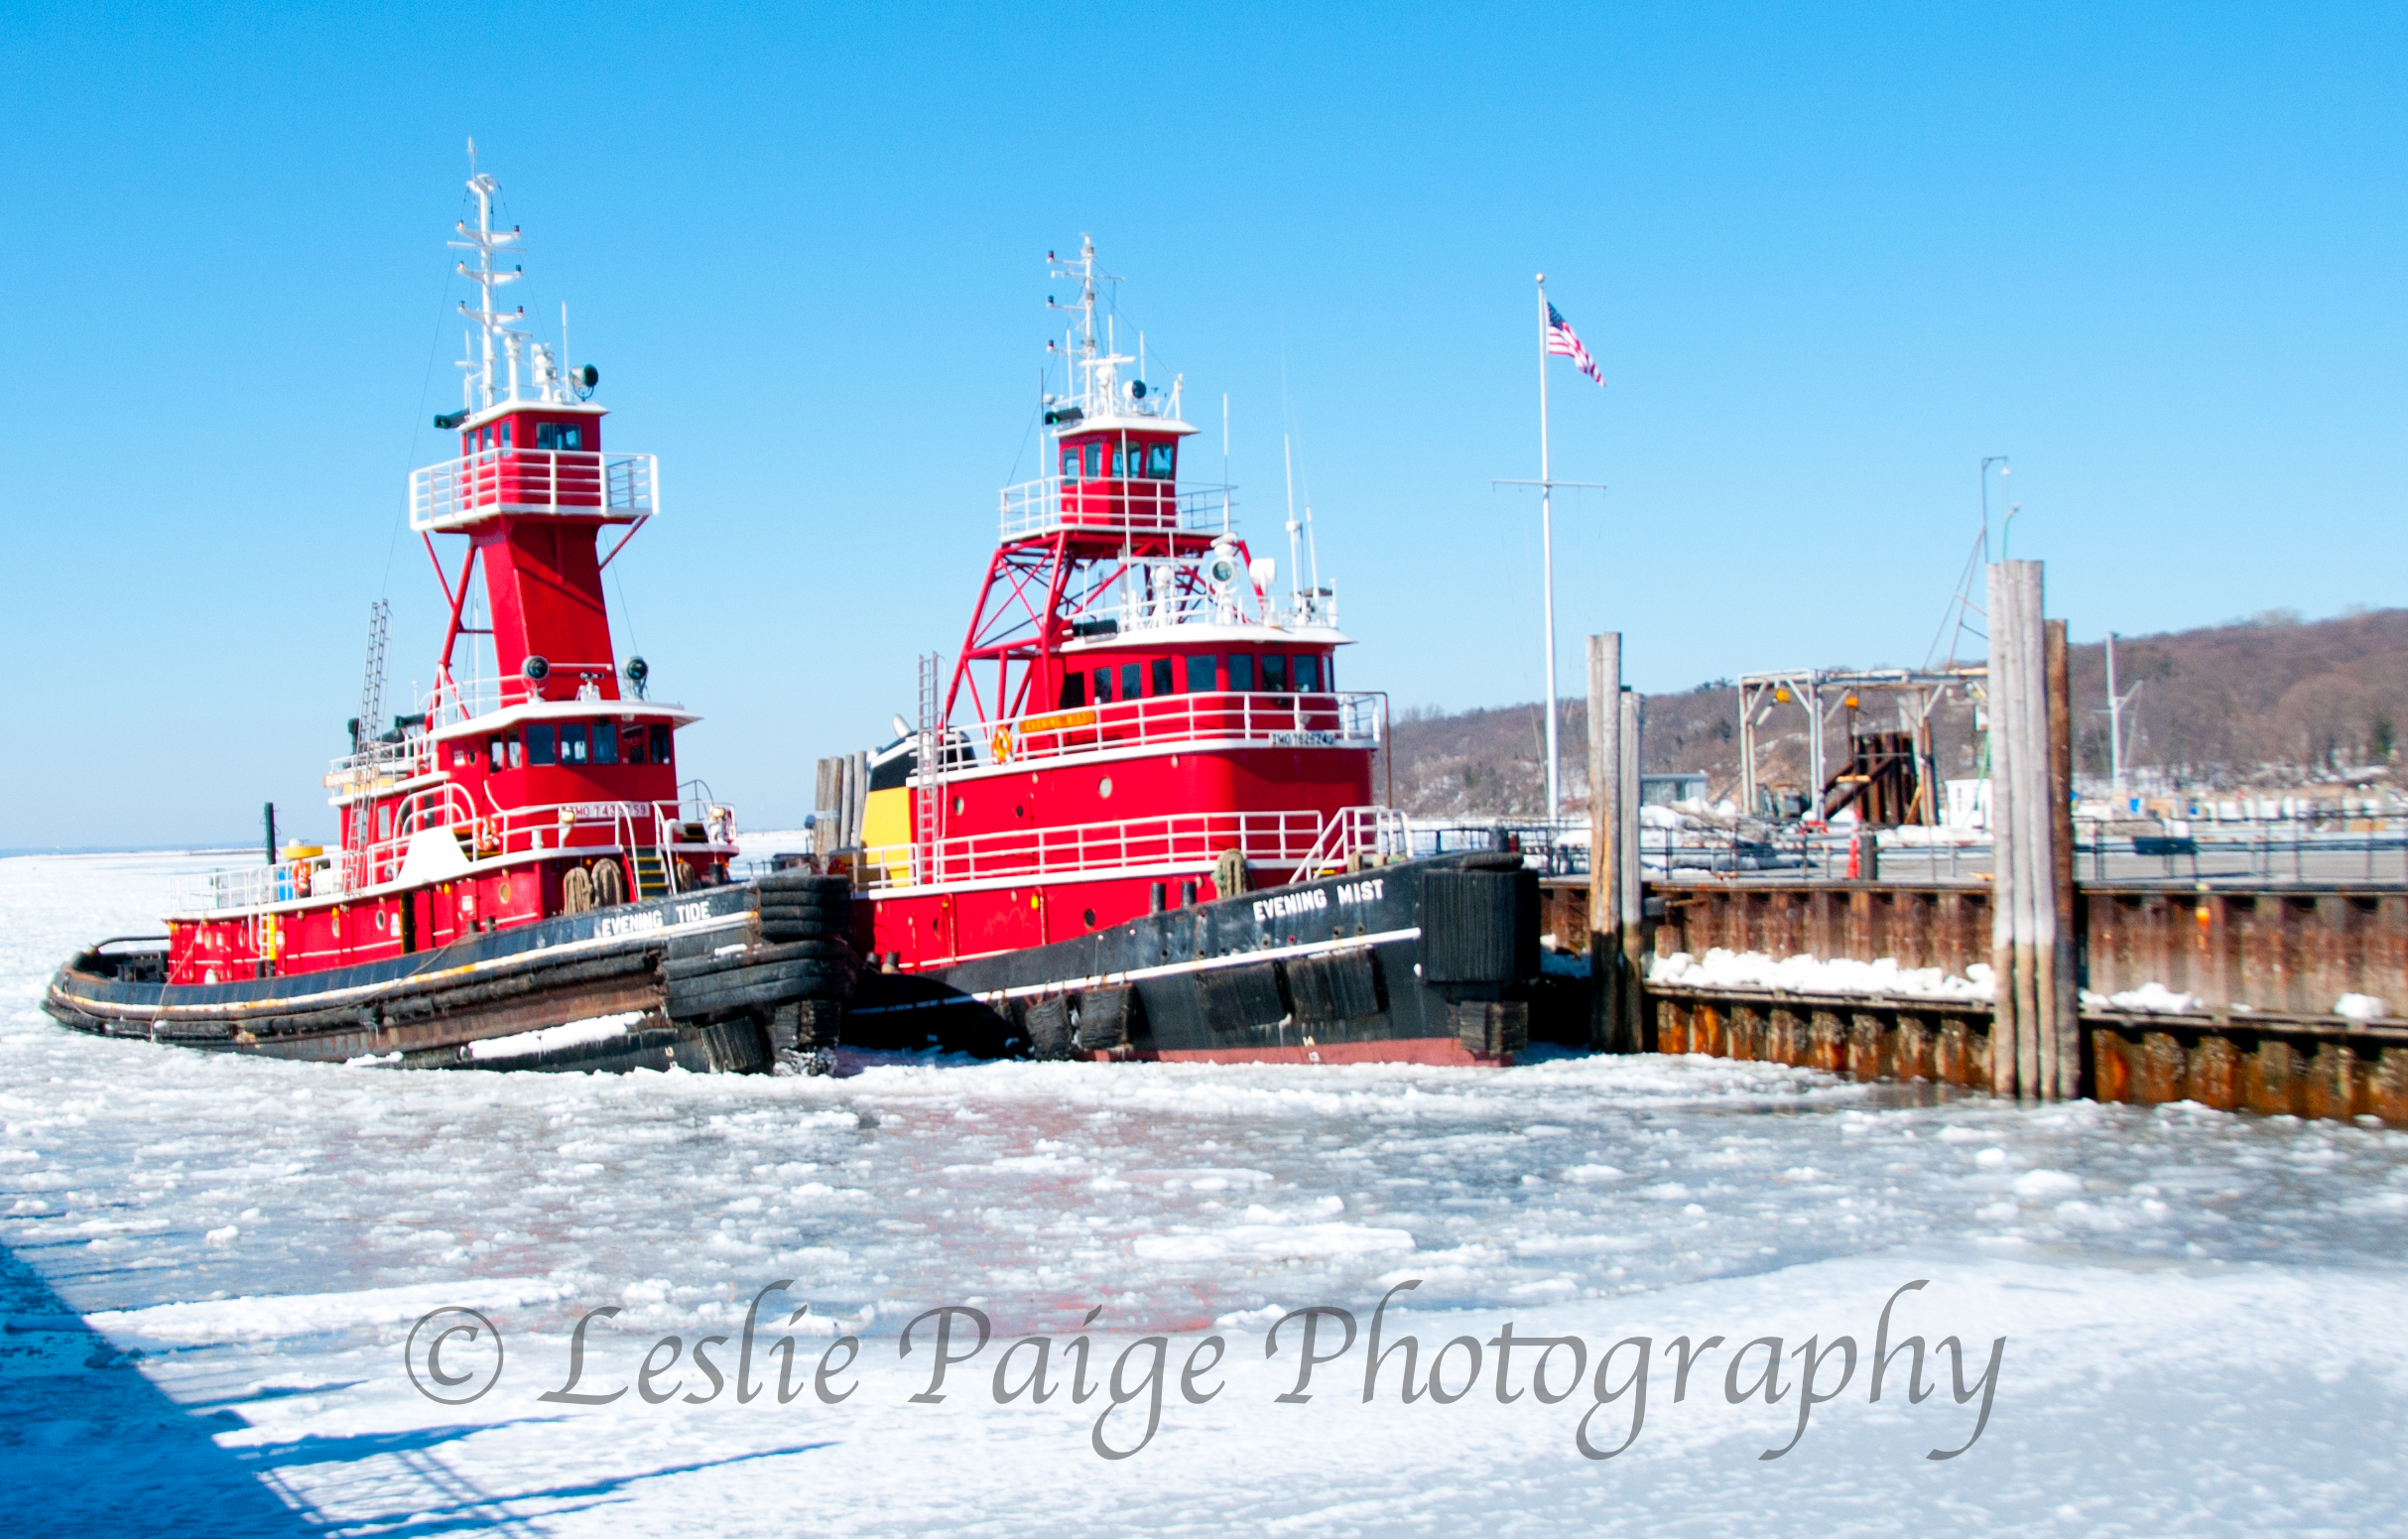 An Unsettled Harbor with watermark-8016